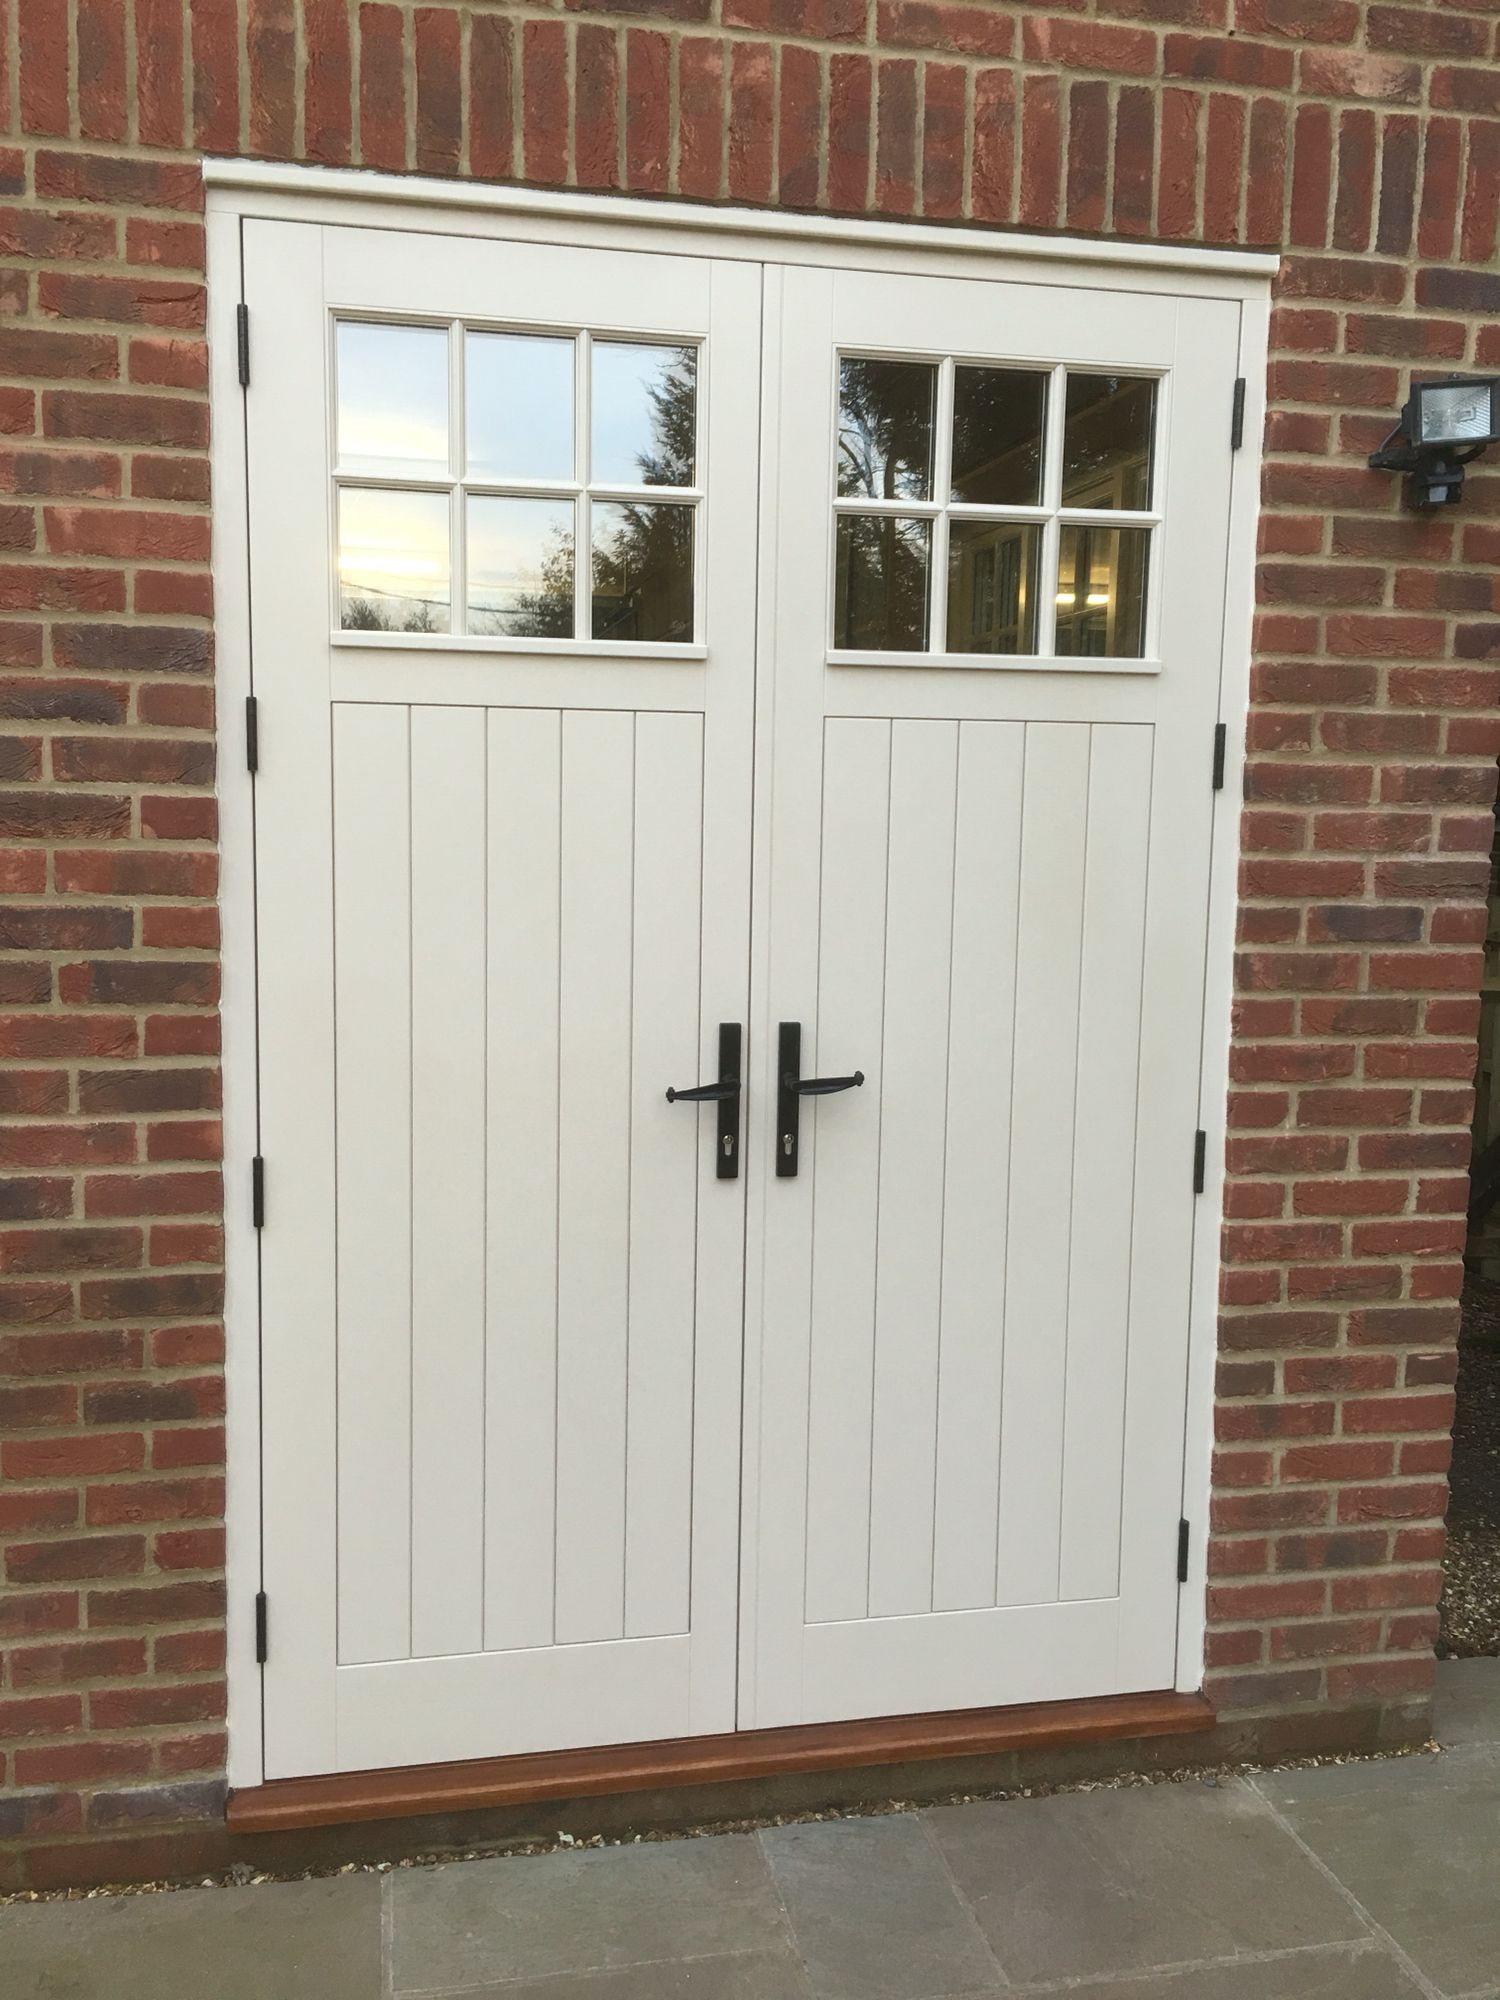 8ft Tall Double Doors For Garage Rear Exit Double Doors Exterior